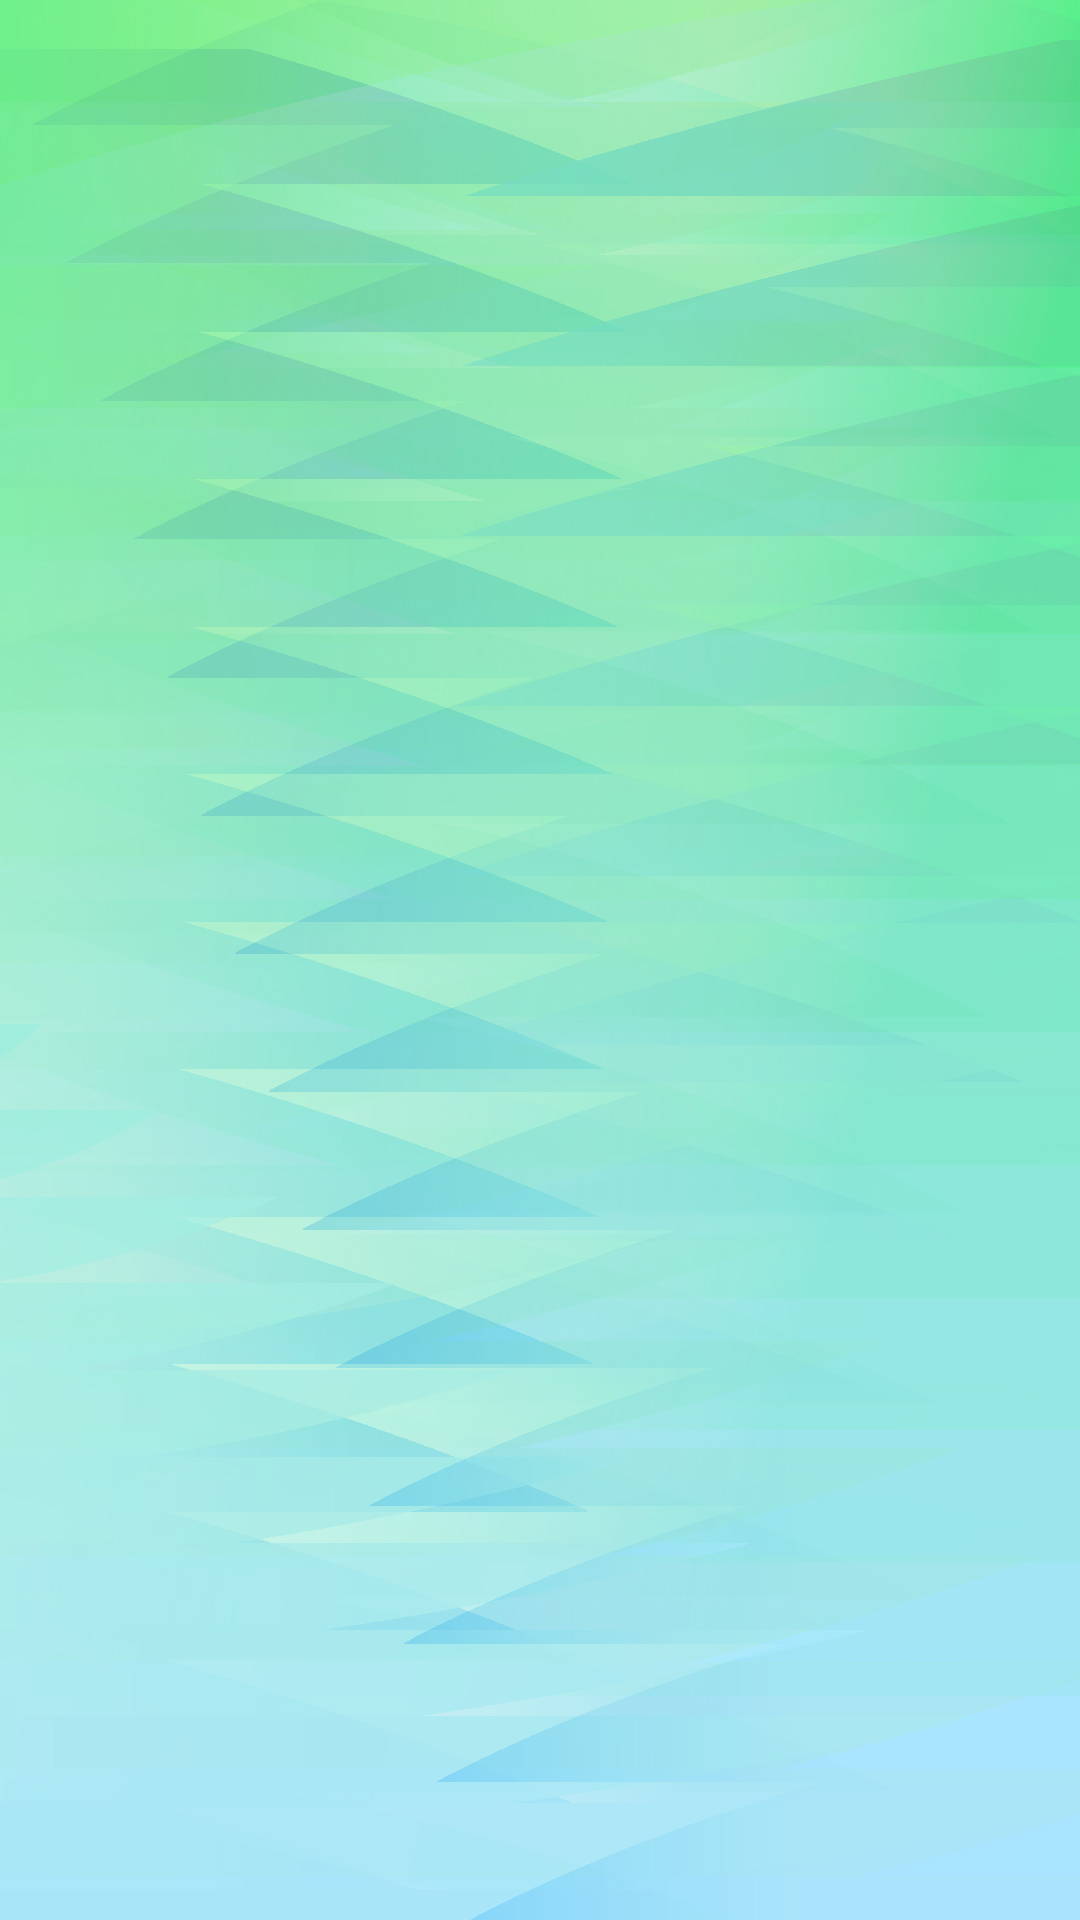 Gradient pattern triangle Blue green wallpapersc iPhone7Plus 1080x1920